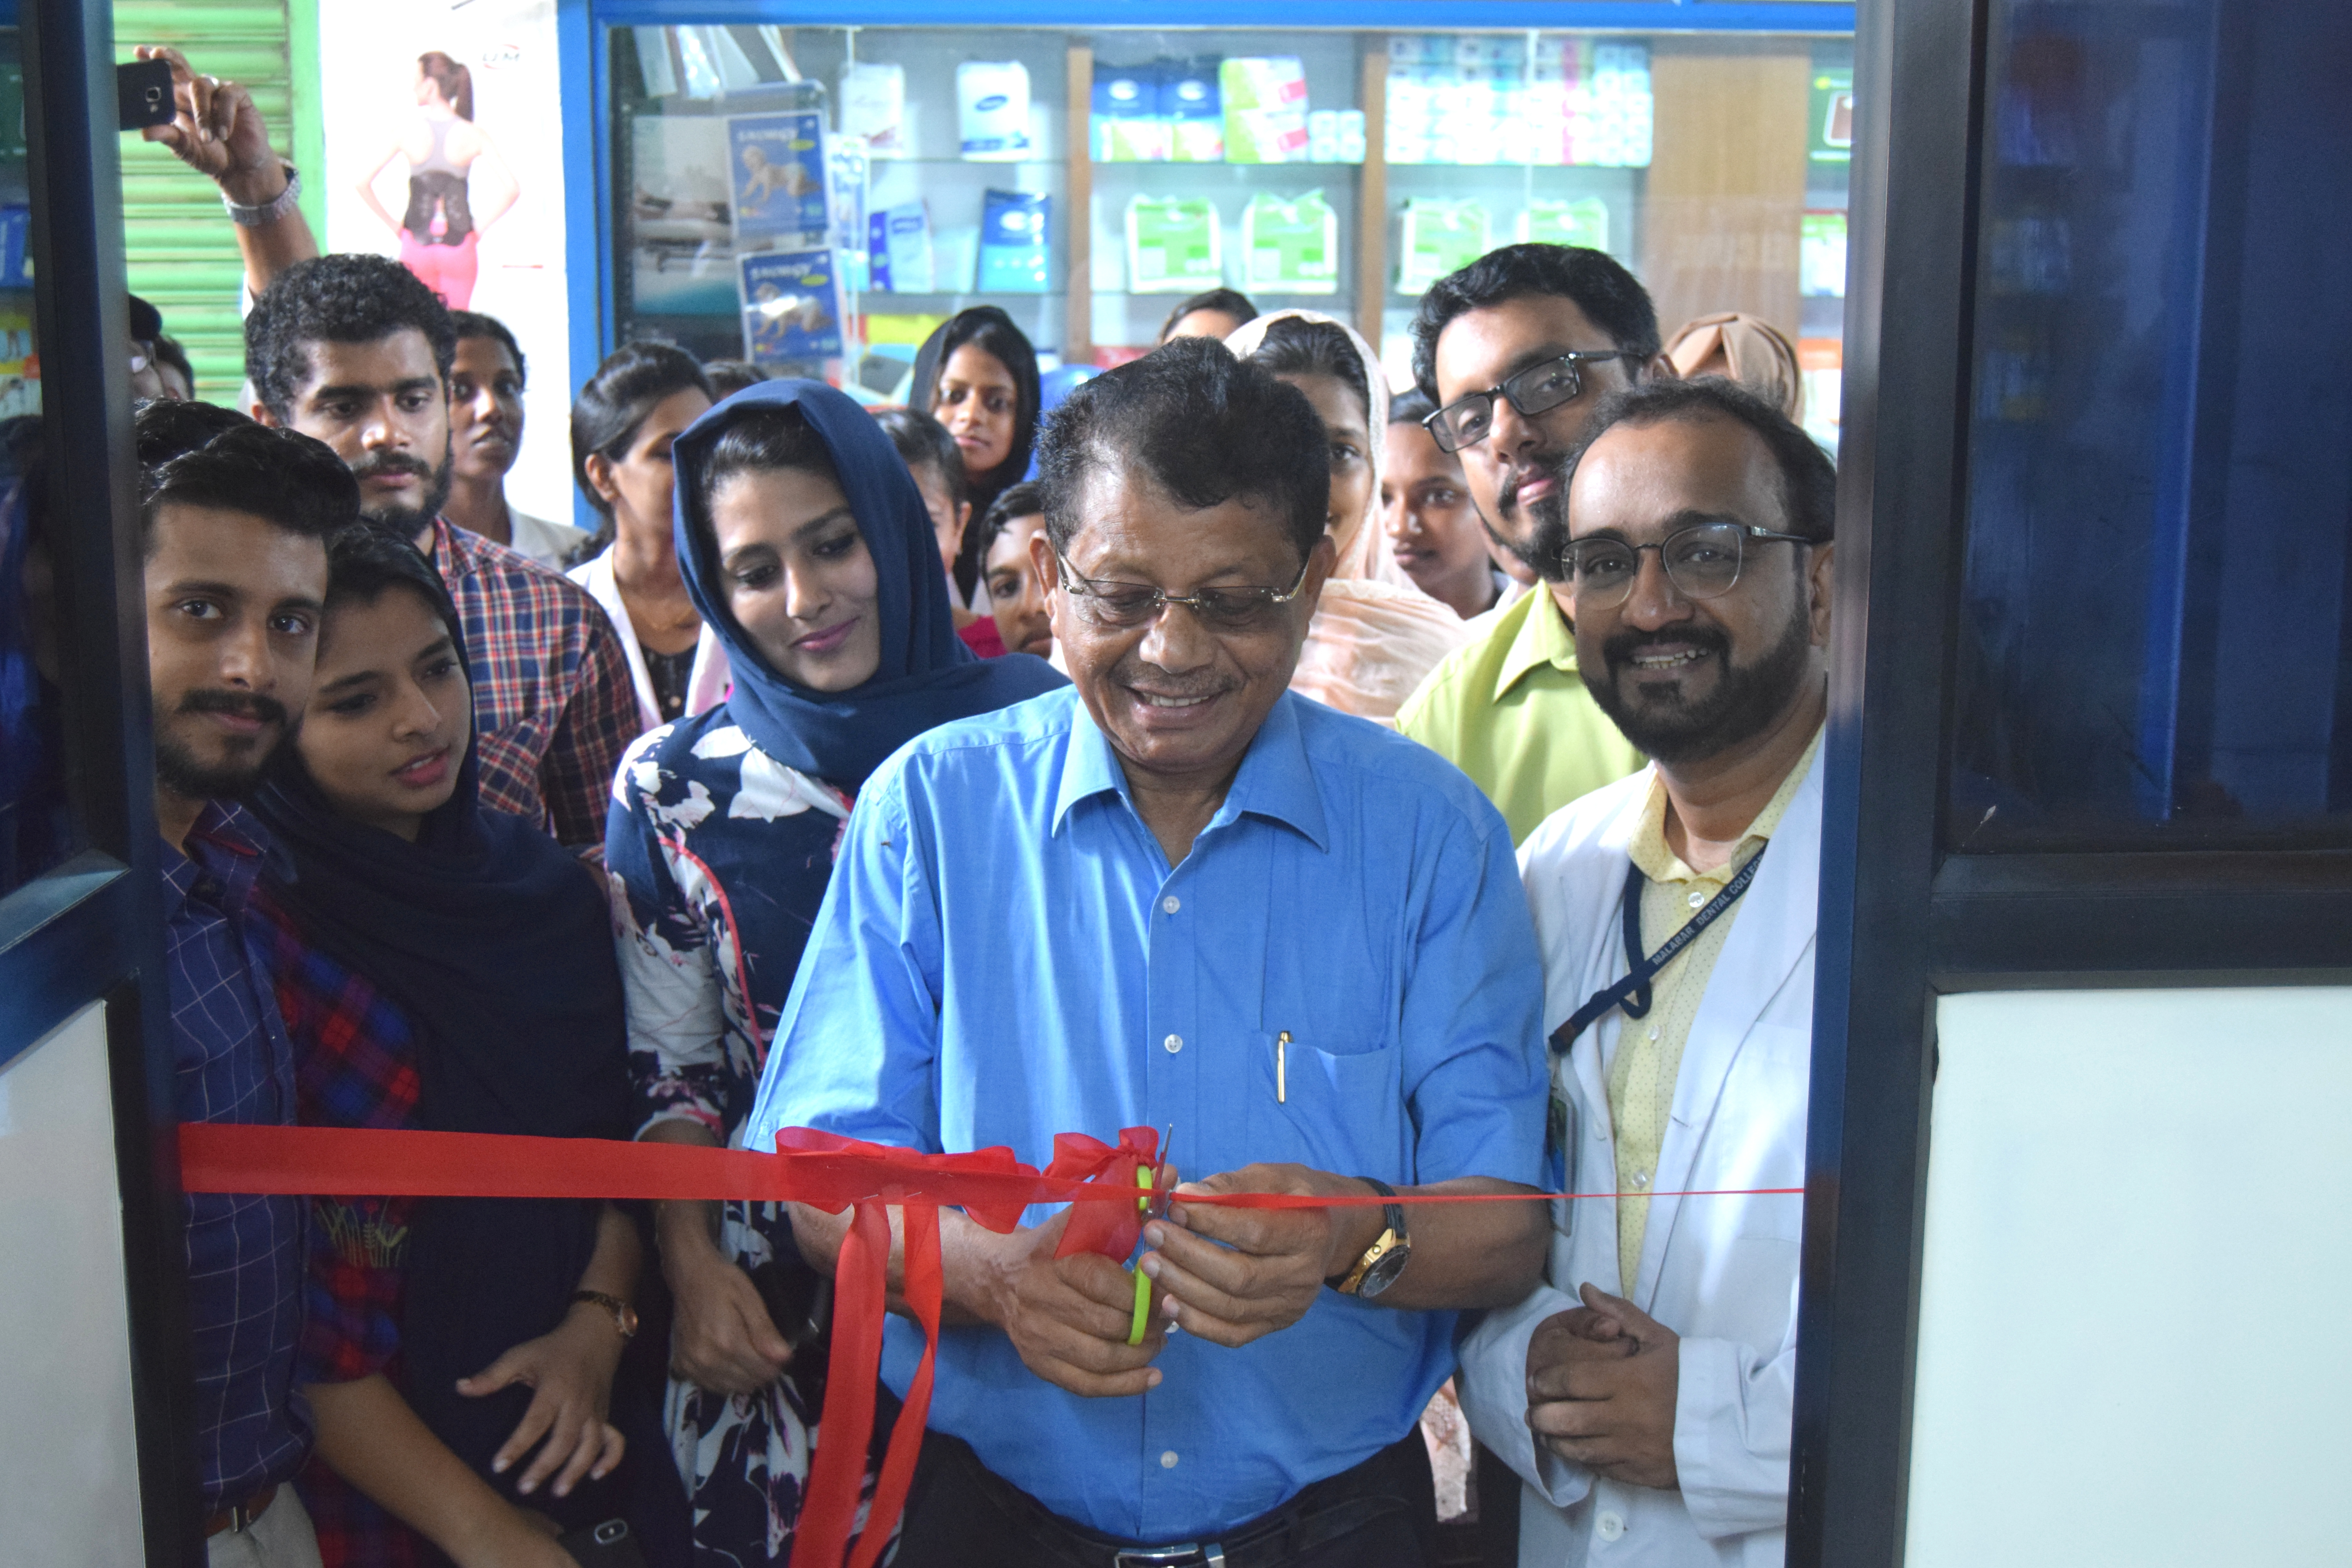 Satellite clinic (PRIDENT) inaugurated on 08-11-2019